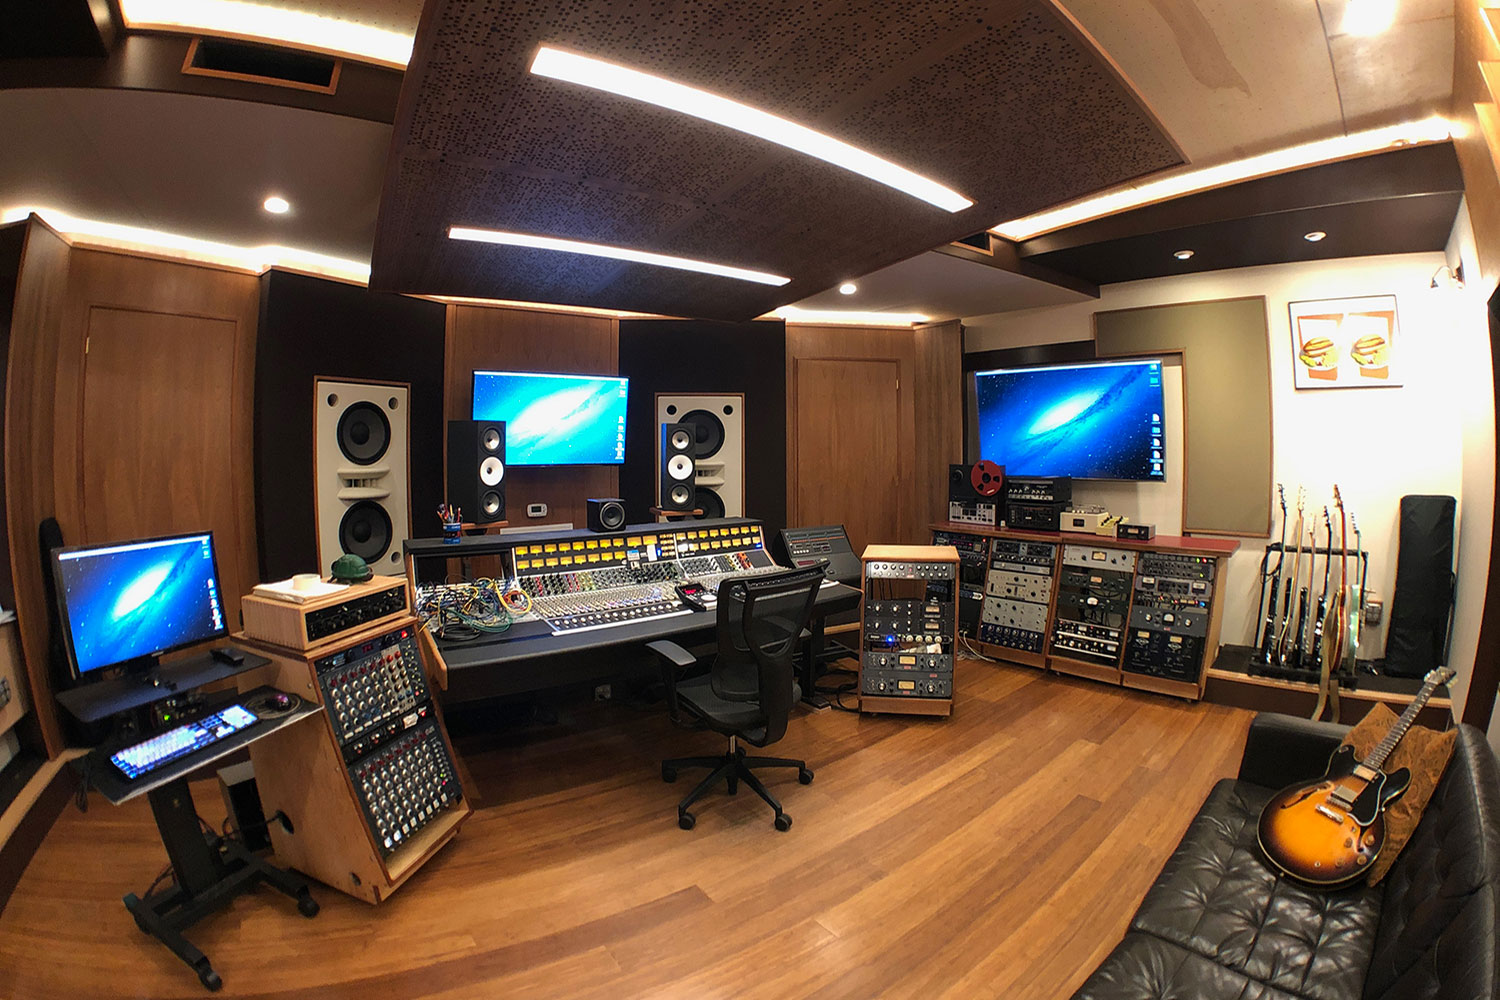 Gear guru studio owner PK Pandey Mad Oak Studios. Beautiful Control Room with Symphonic Acoustics custom speakers. WSDG was the only recording studio design firm considered for this project. Control Room left side view 2.